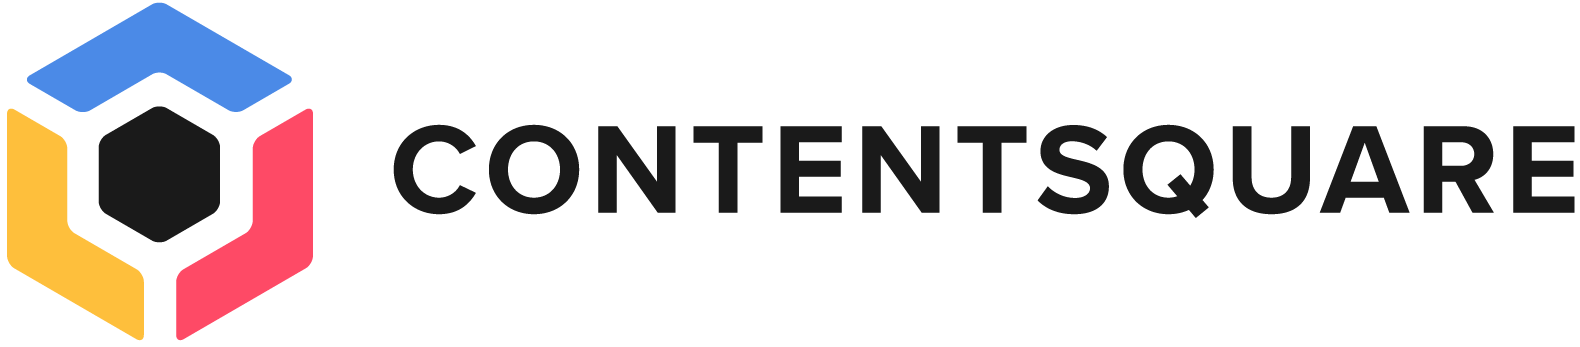 contentsquare-aspect-ratio-x